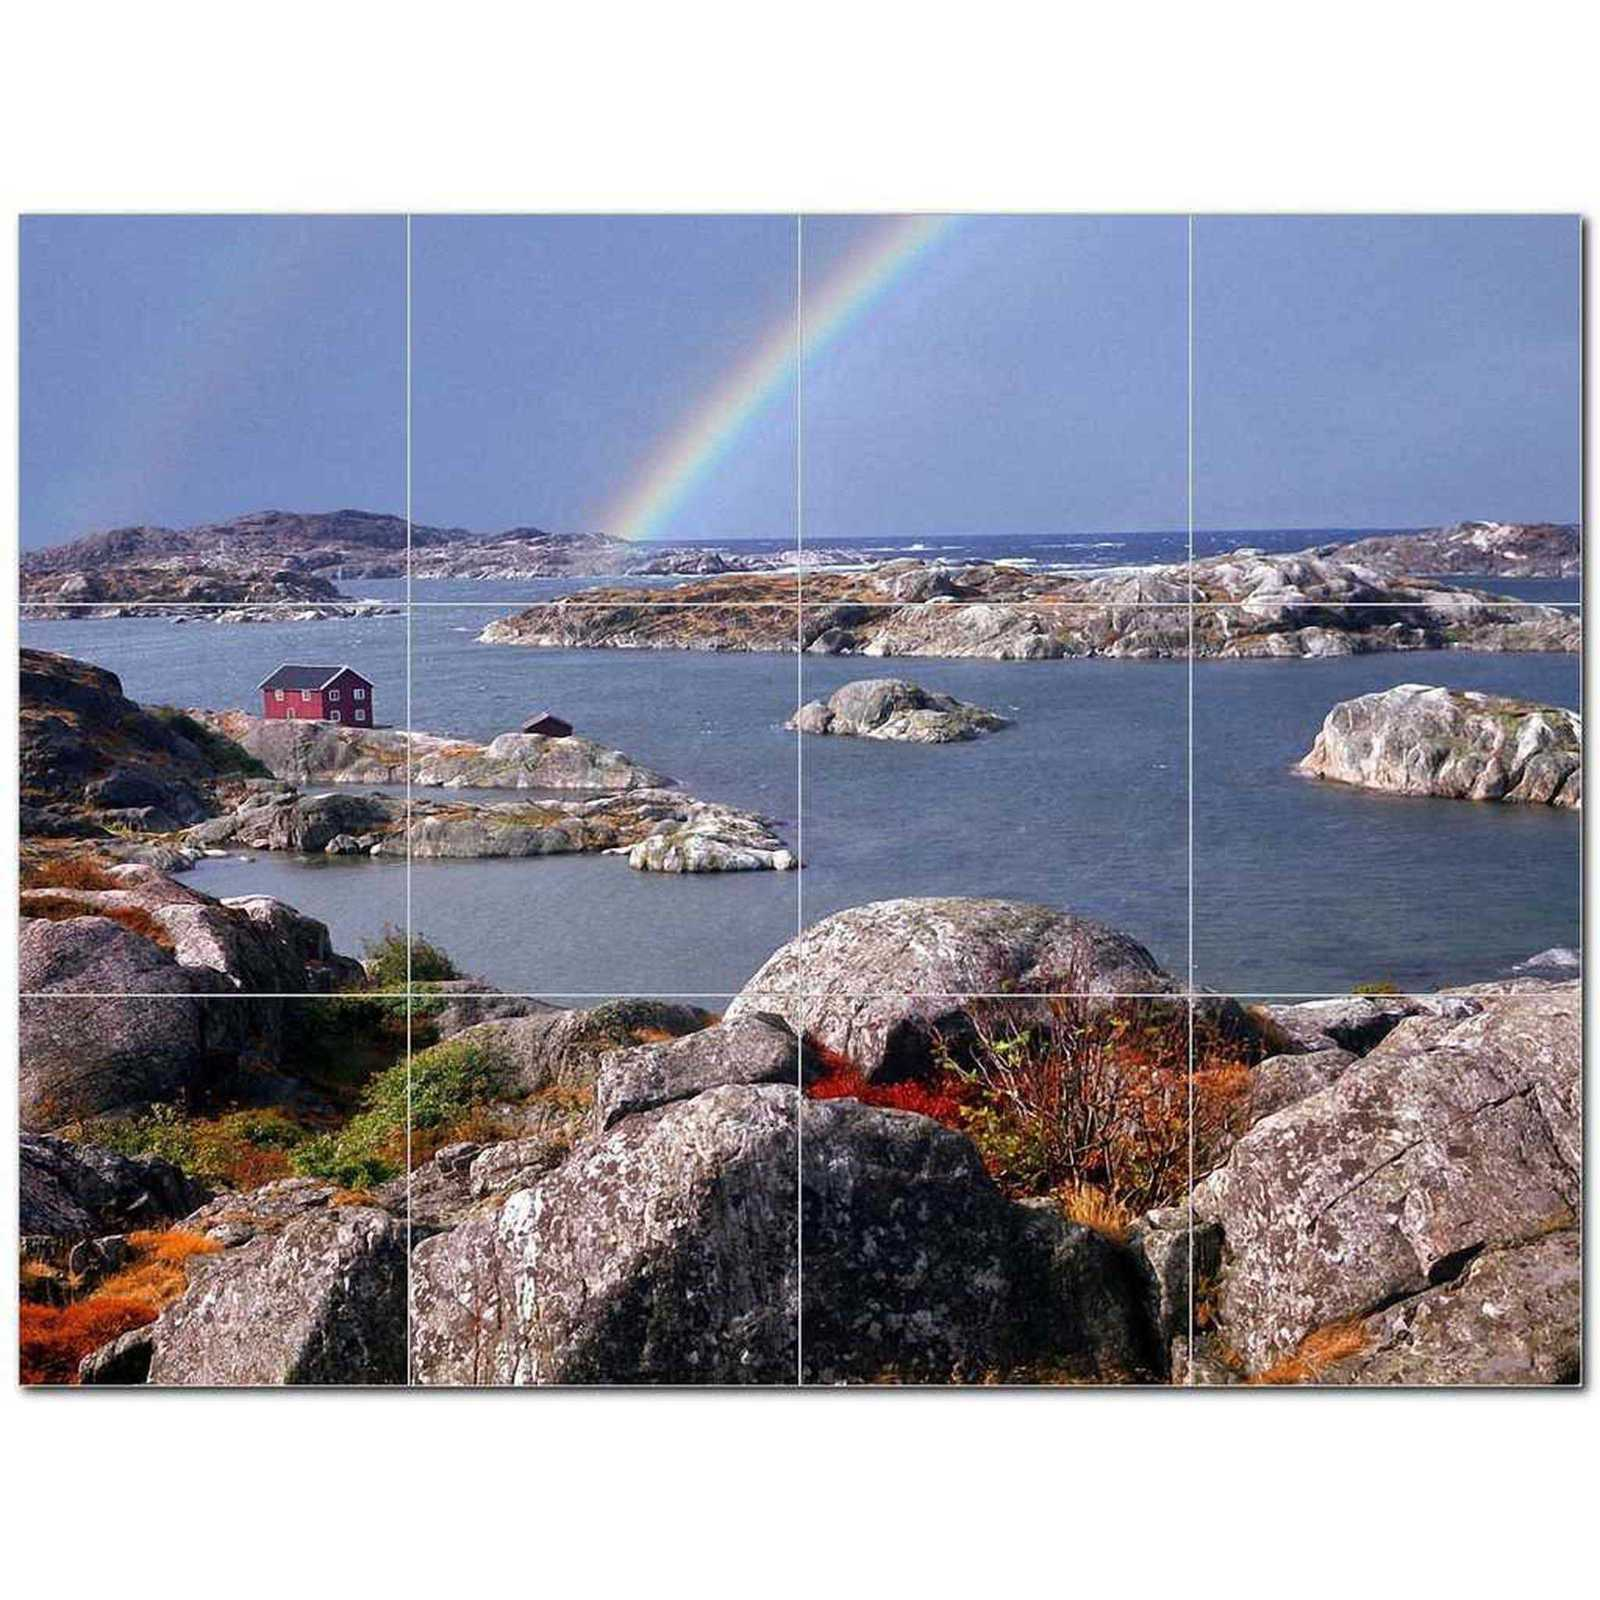 Primary image for Rainbow Photo Ceramic Tile Mural Kitchen Backsplash Bathroom Shower BAZ405688